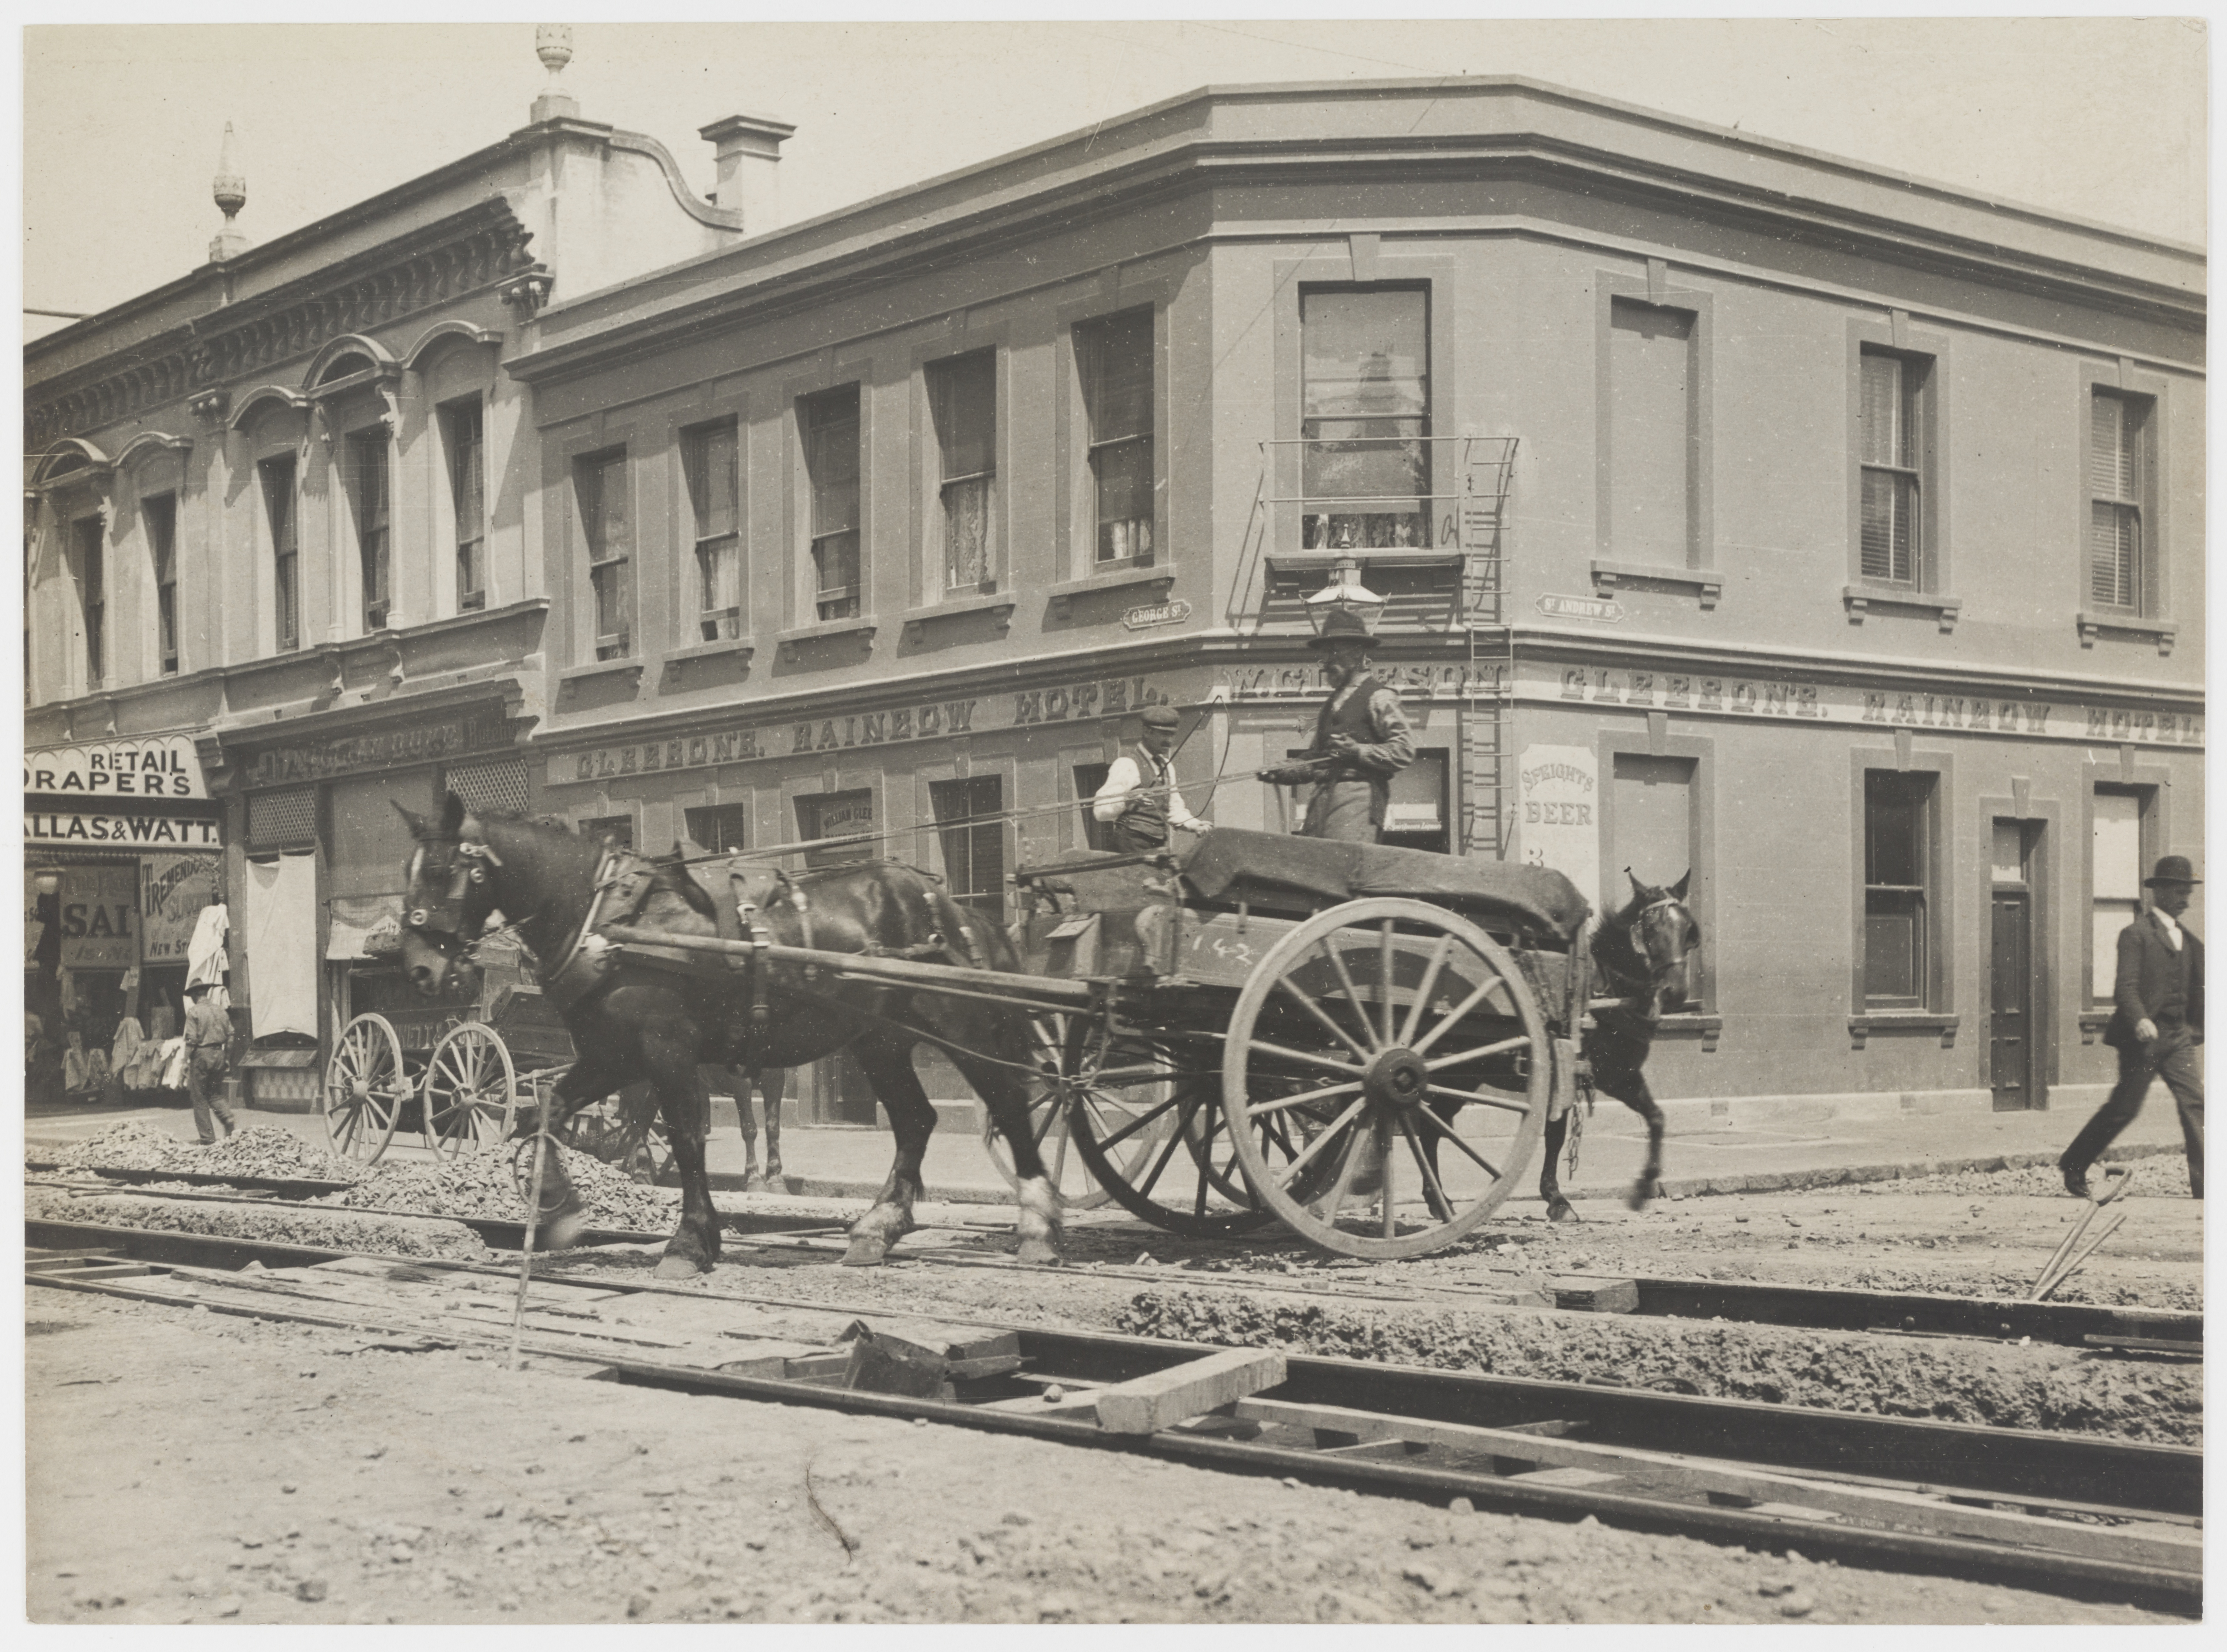 Laying tram tracks, St Andrews and George Streets, Dunedin, New Zealand, c. 1900